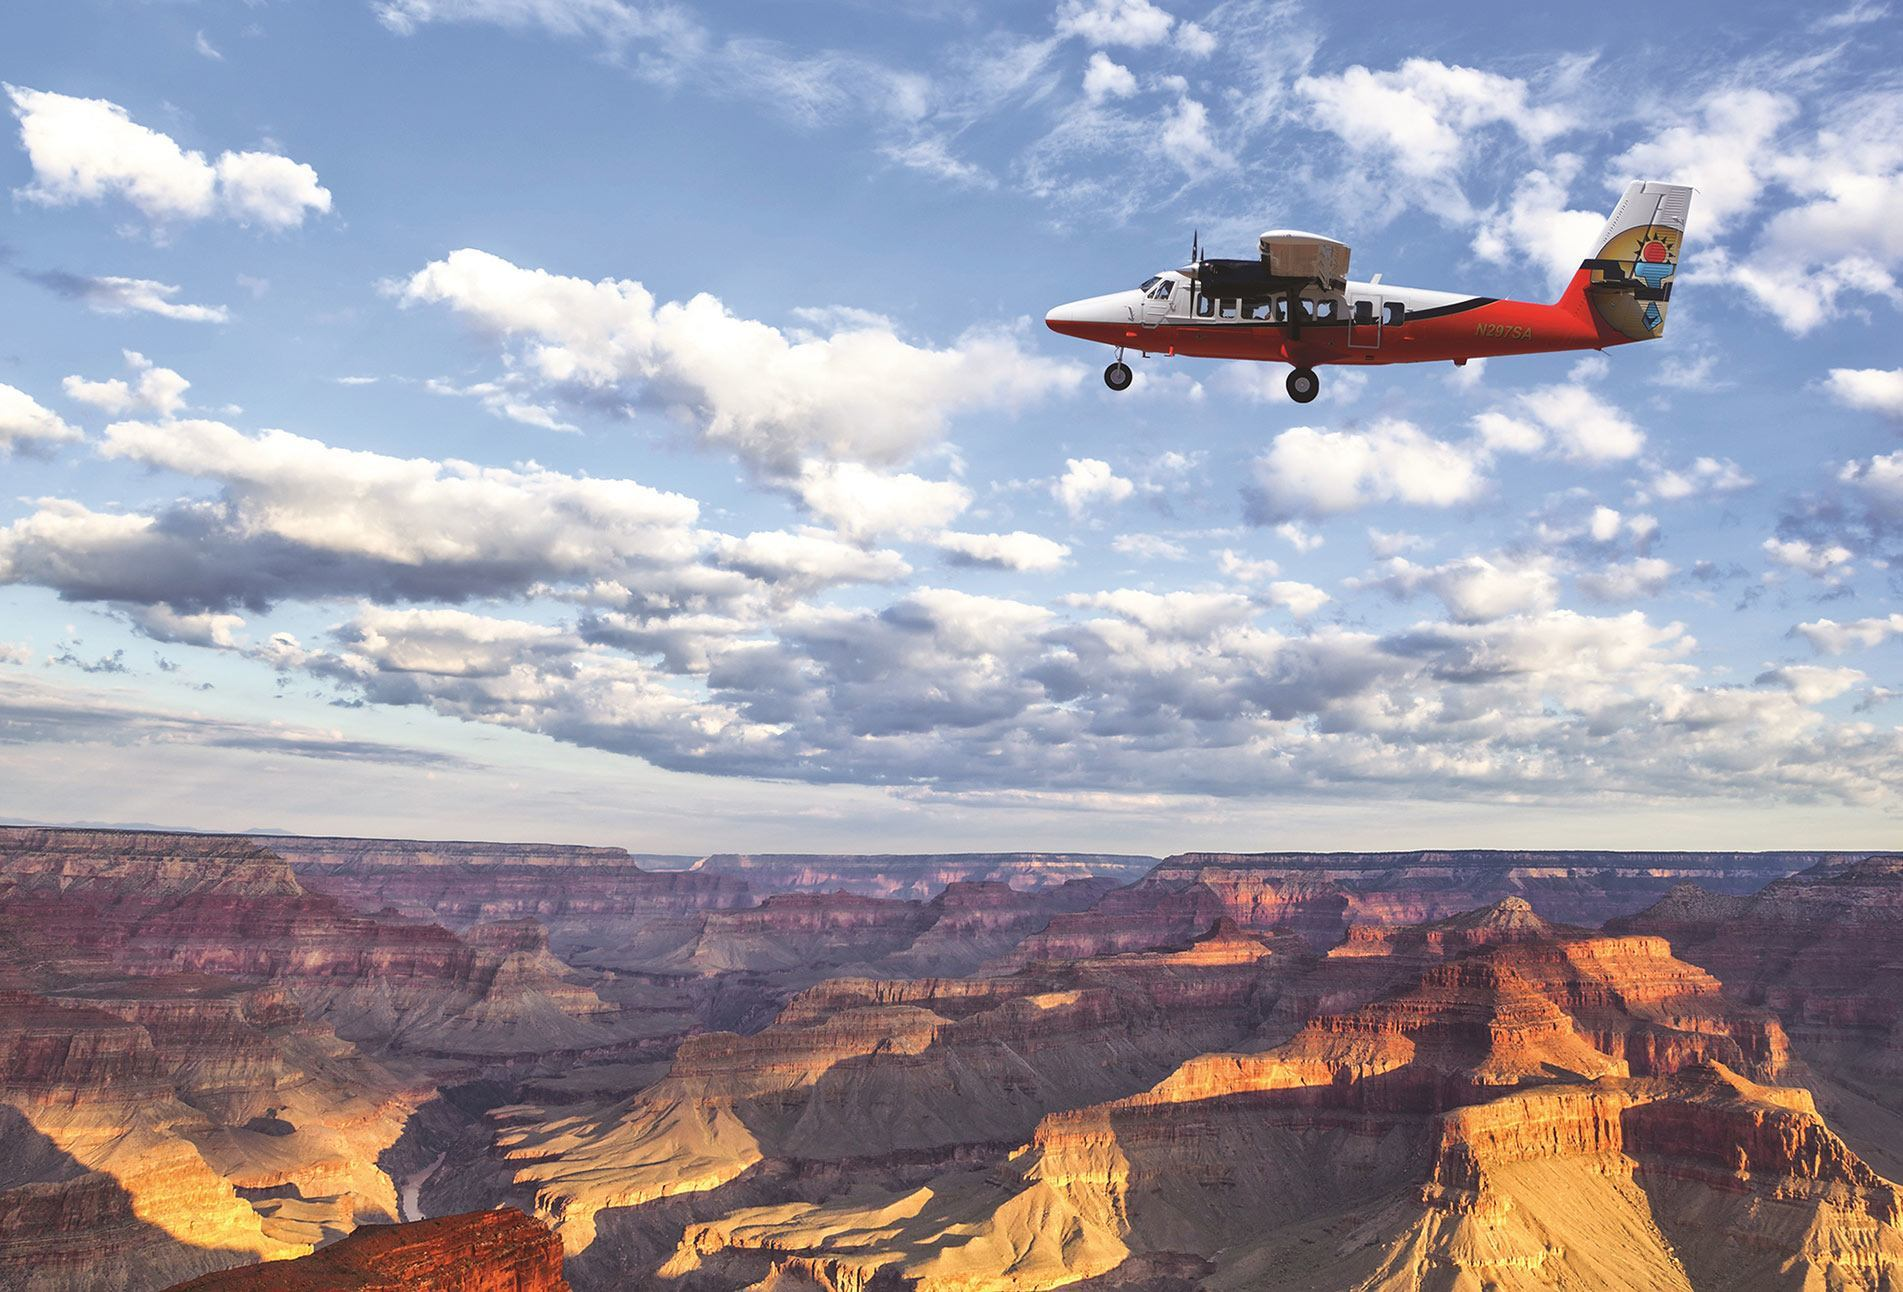 Grand Canyon Sightseeing And Helicopter Tours  Papillon Grand Canyon Air Tours